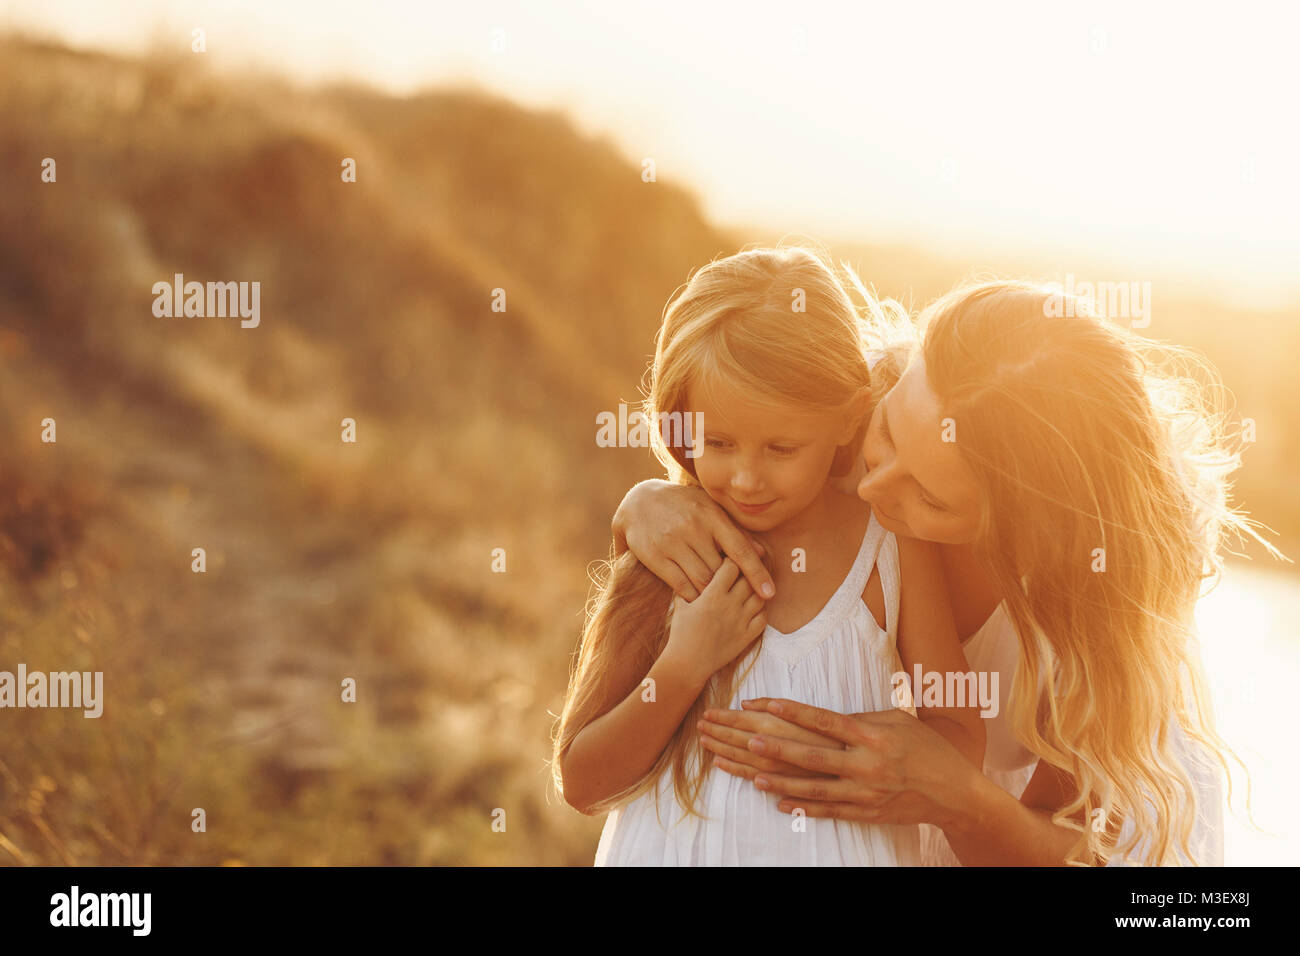 Family, mother and daughter on the river bank. The girl bends over and says something to her daughter. Girls in - Stock Image